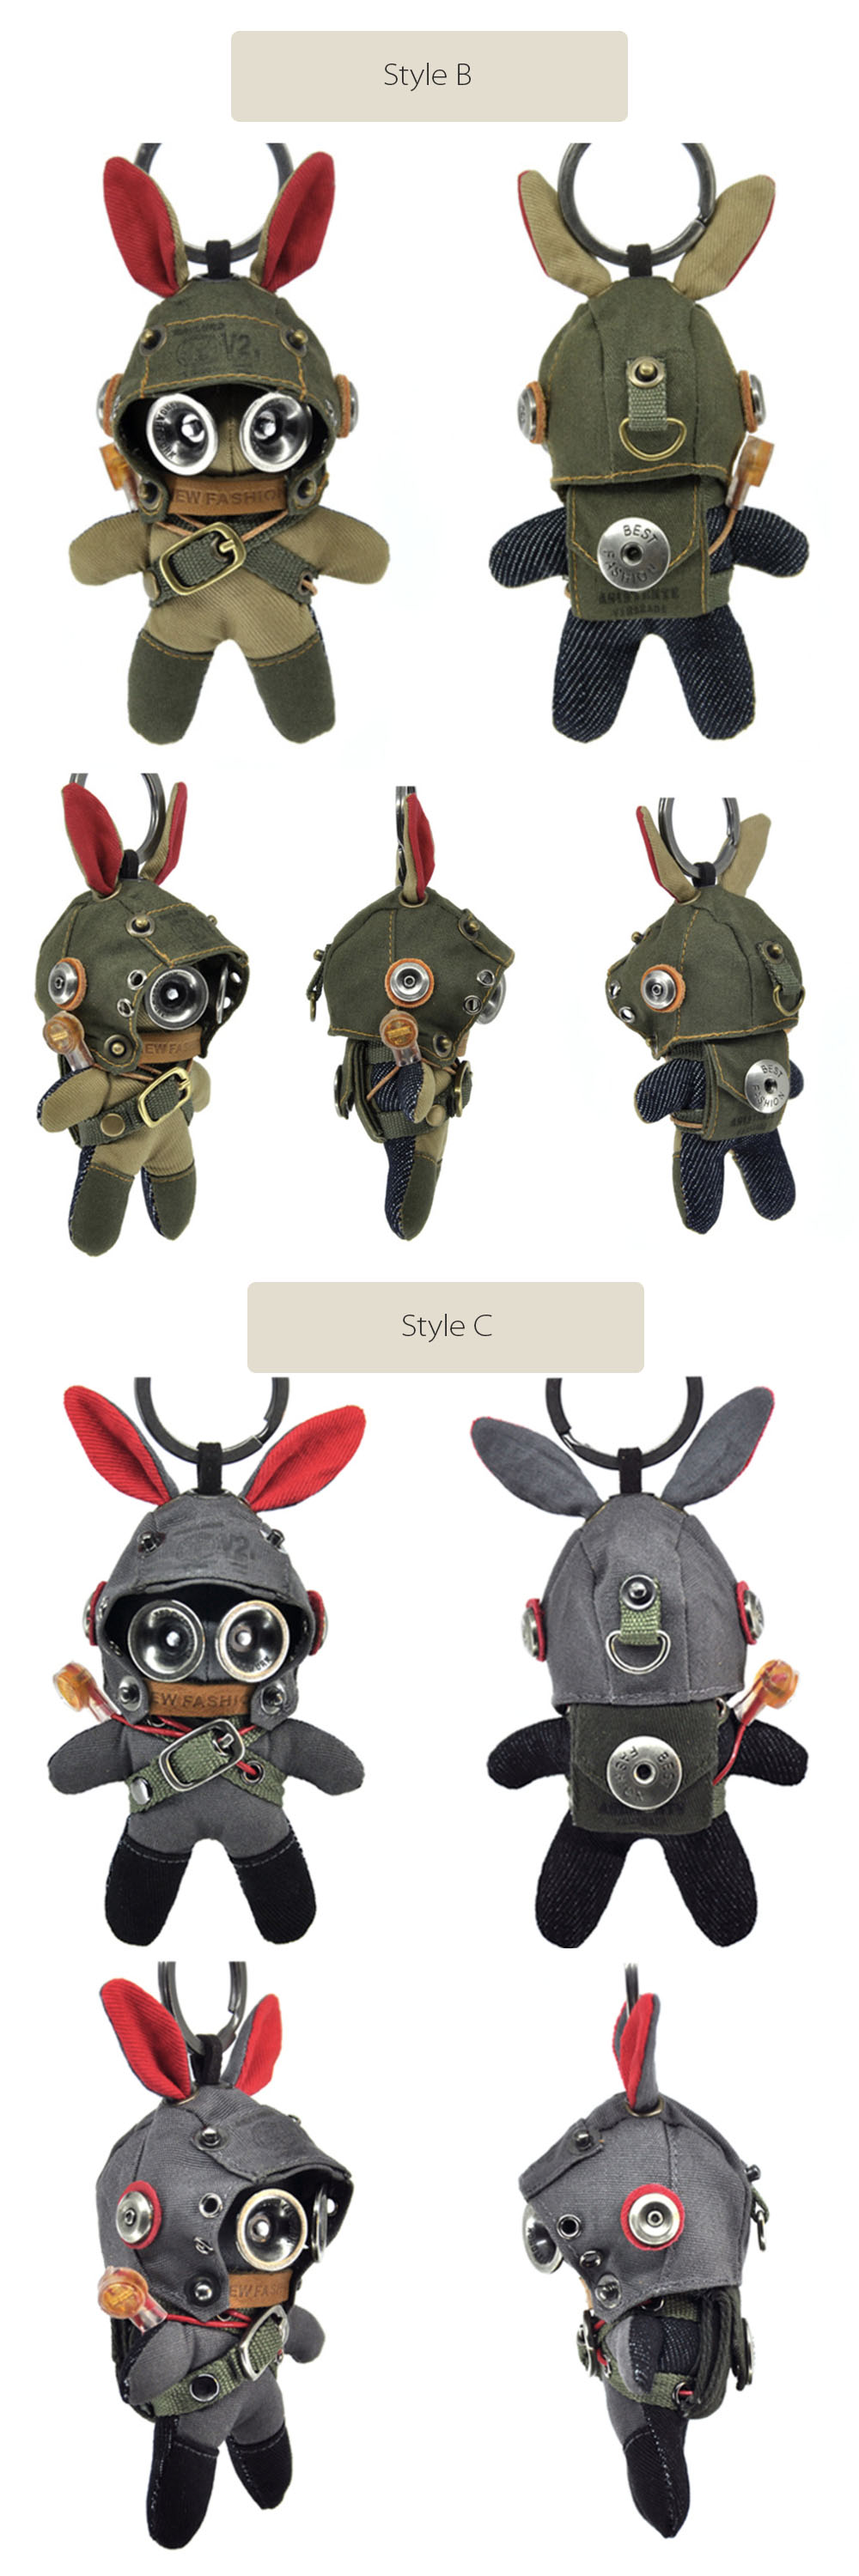 Plush Rabbit Key Chain Military Style